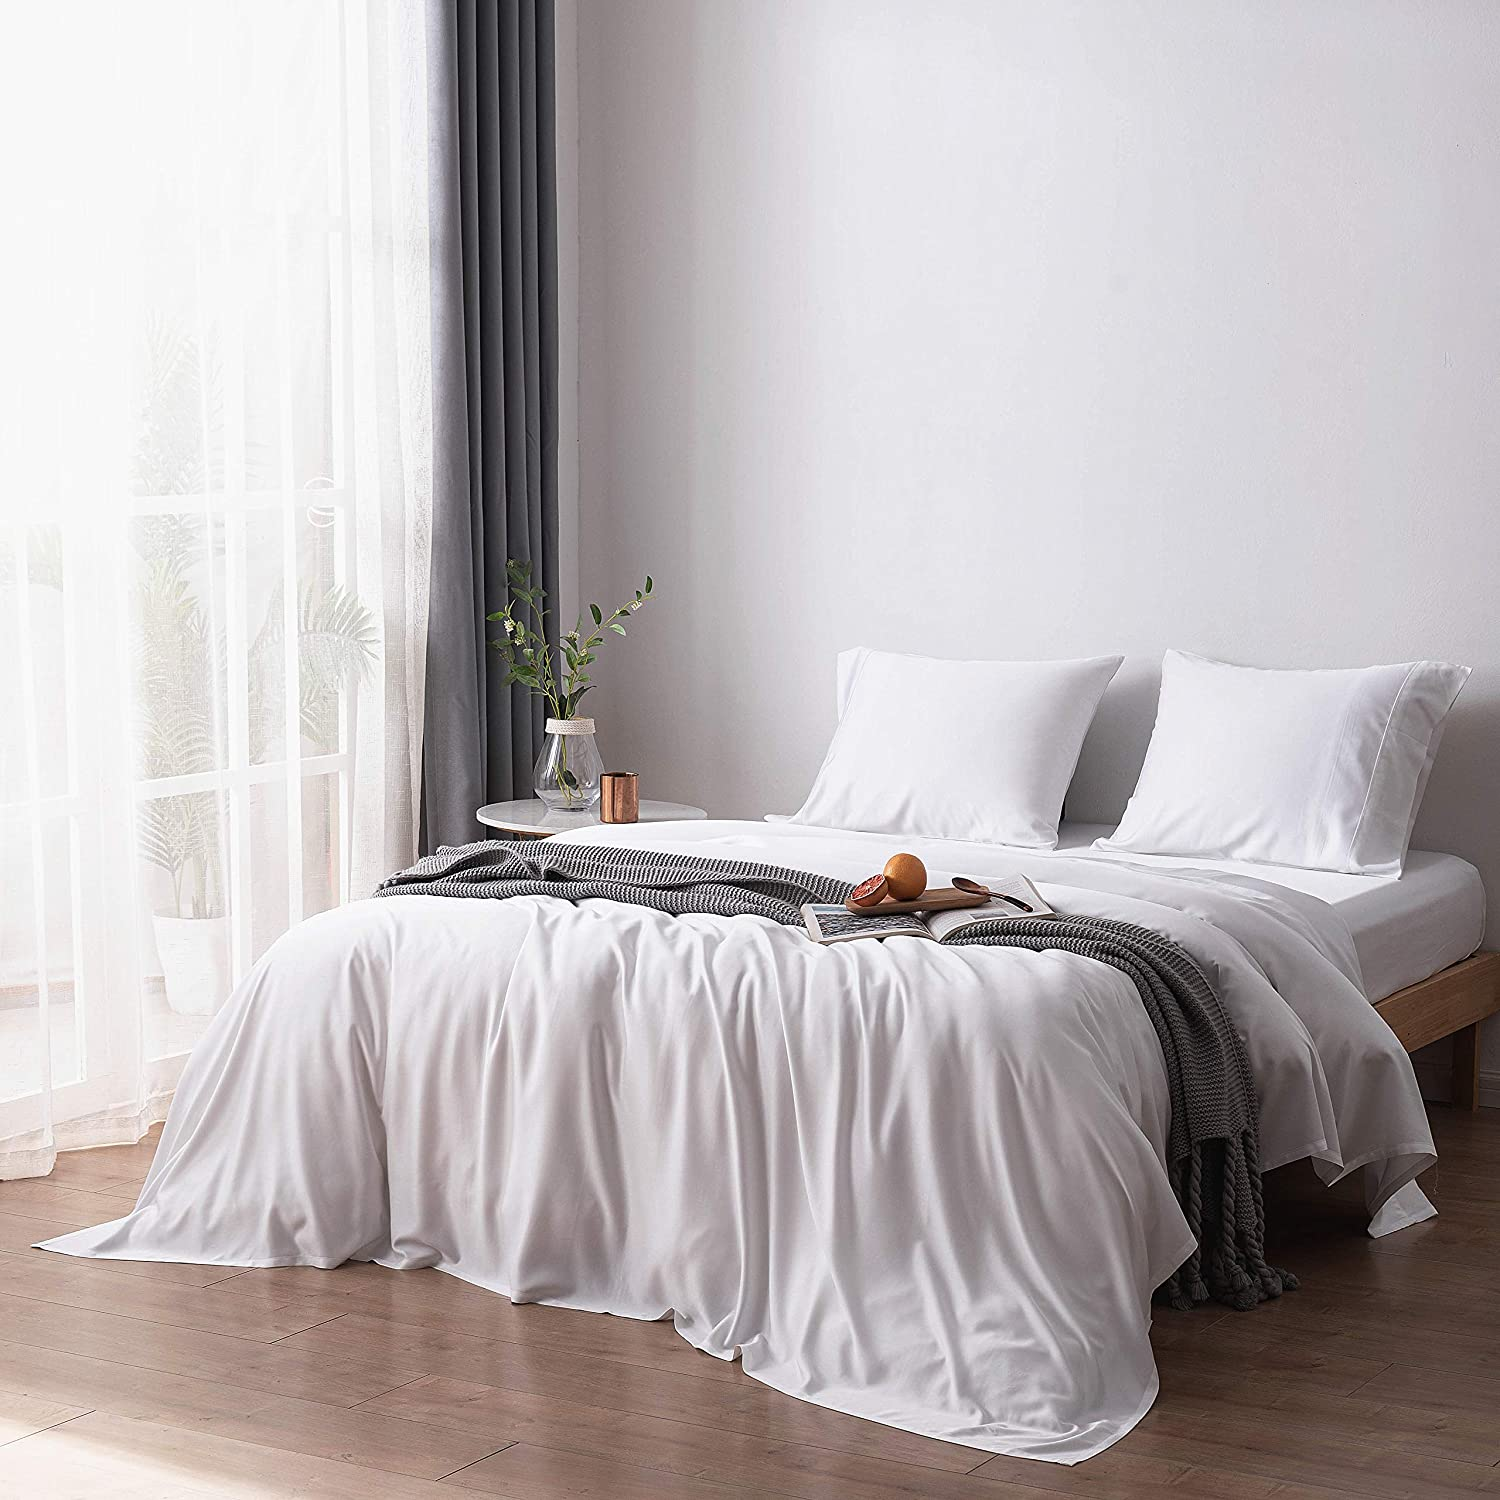 Bamtek 100% Organic 300TC Sateen Bamboo Sheet Set